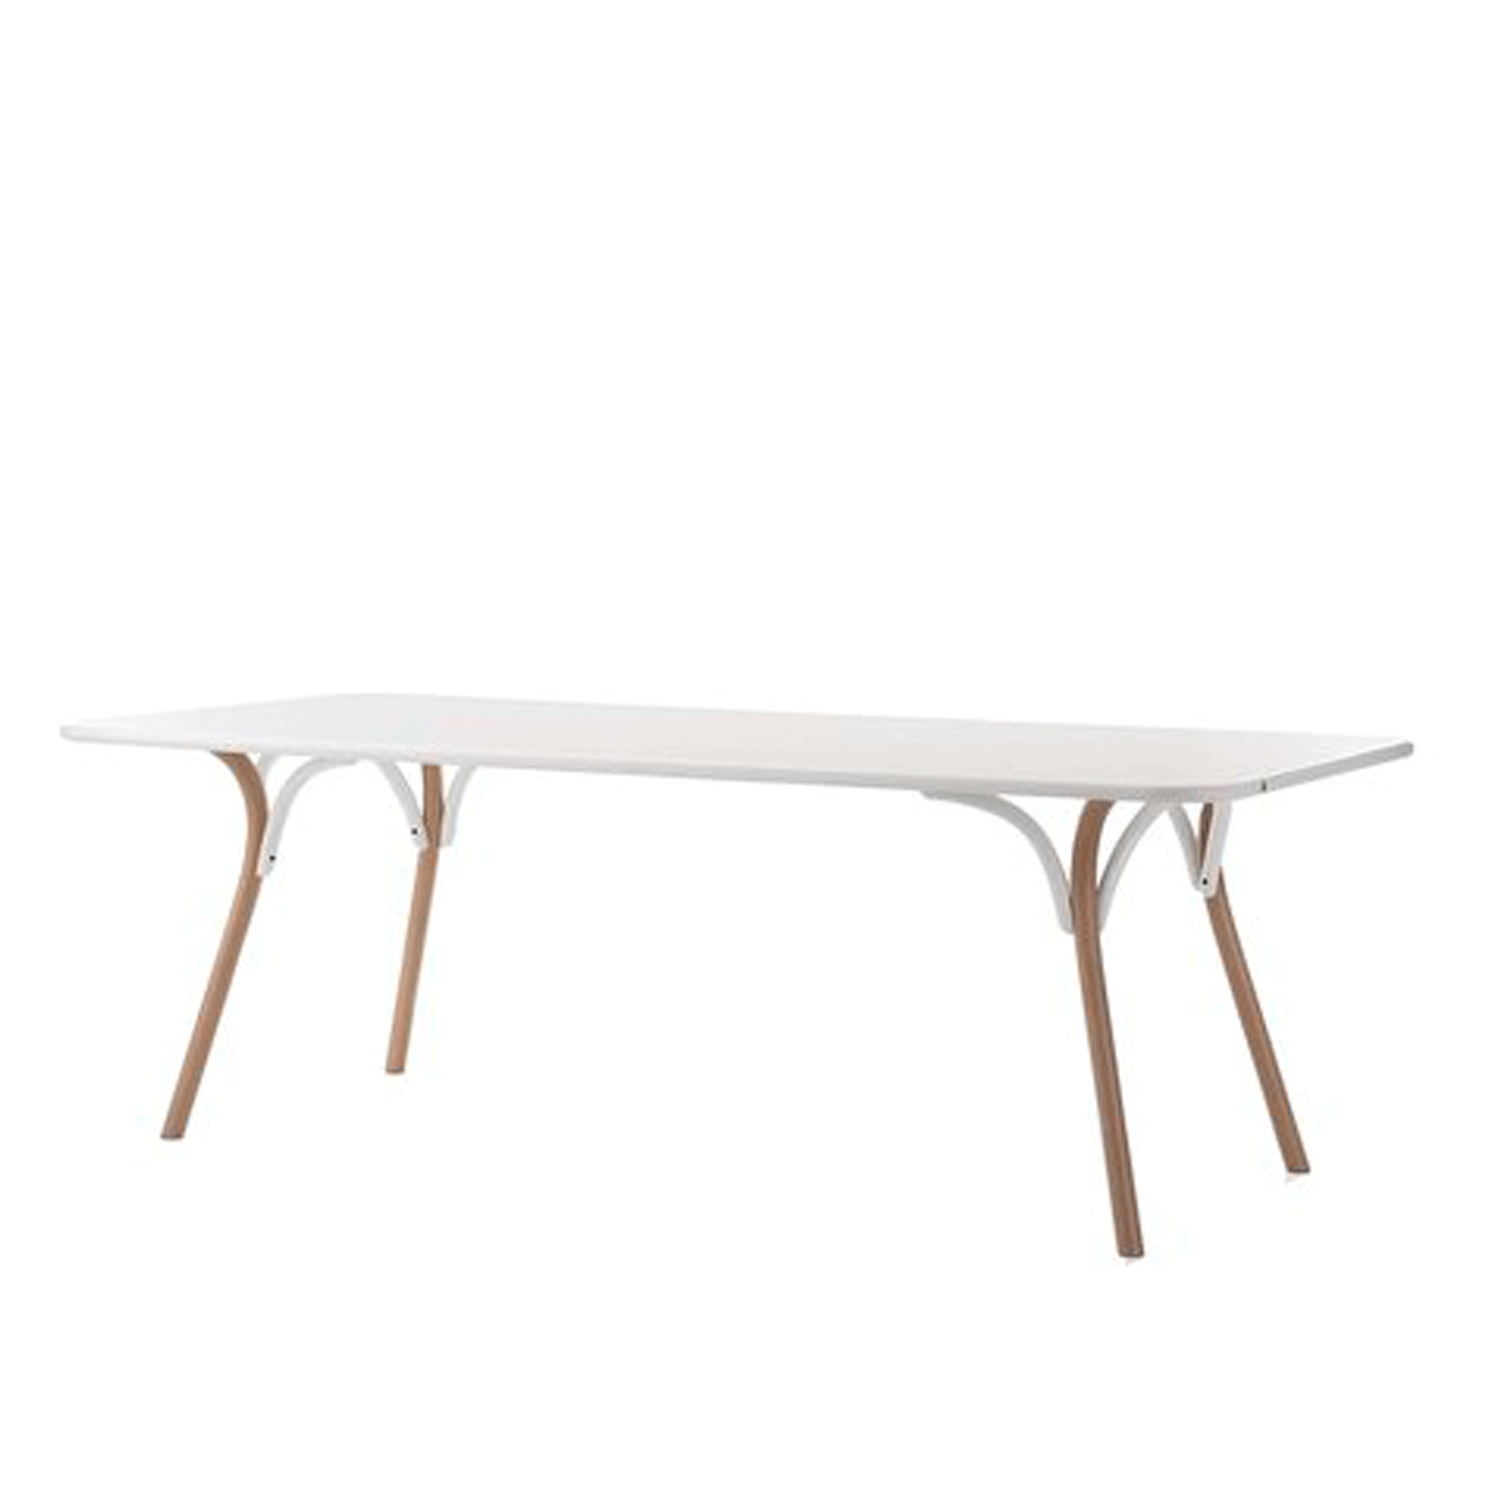 Arch Dining Table - This timeless object of functional decor boasts an elegant colour combination of white and natural wood that adds a cosy and sophisticated touch to a modern or rustic home. The structure of this dining table features slanted legs that curve at the top, connected by delicate arches that give its name to this piece, at its best when surrounded with white-lacquered or natural chairs.